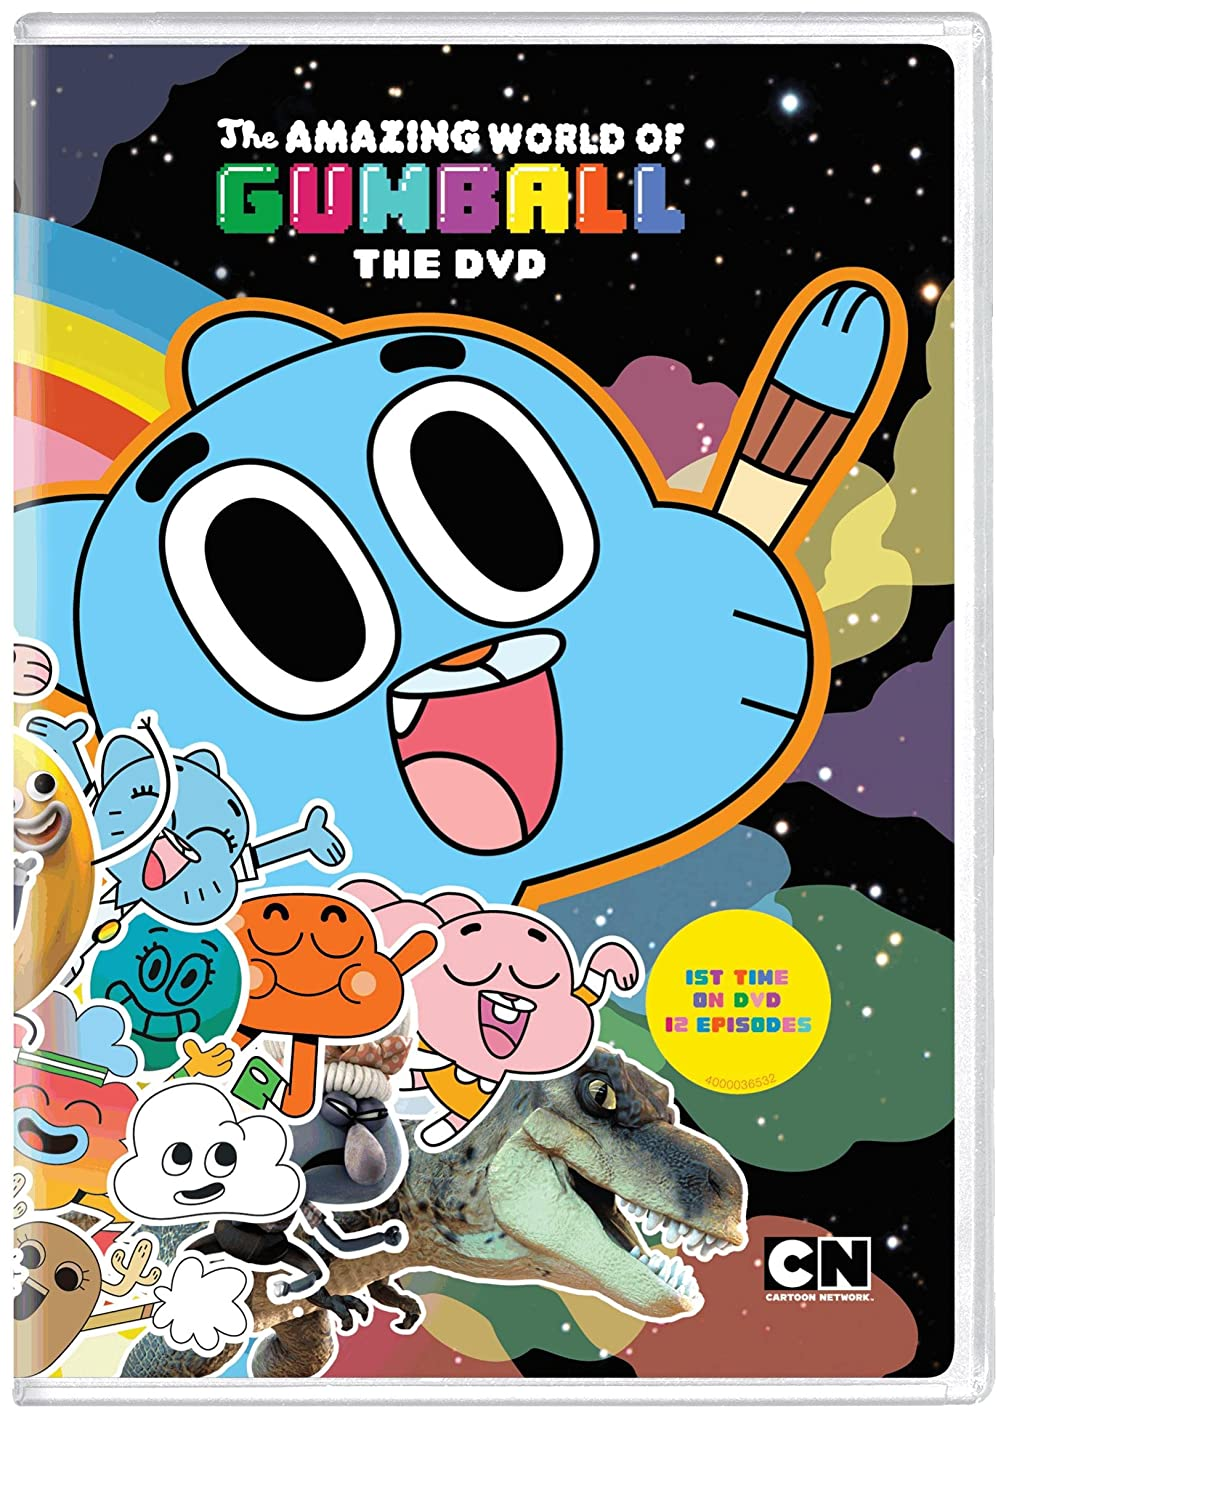 Amazon Com Cartoon Network The Amazing World Of Gumball The Dvd Carsten Bunte Michael Carrington Daniel Lennard Joanna Beresford Ben Bocquelet Mic Graves Logan Grove Teresa Gallagher Dan Russell Kwesi Boakye Kerry Shale